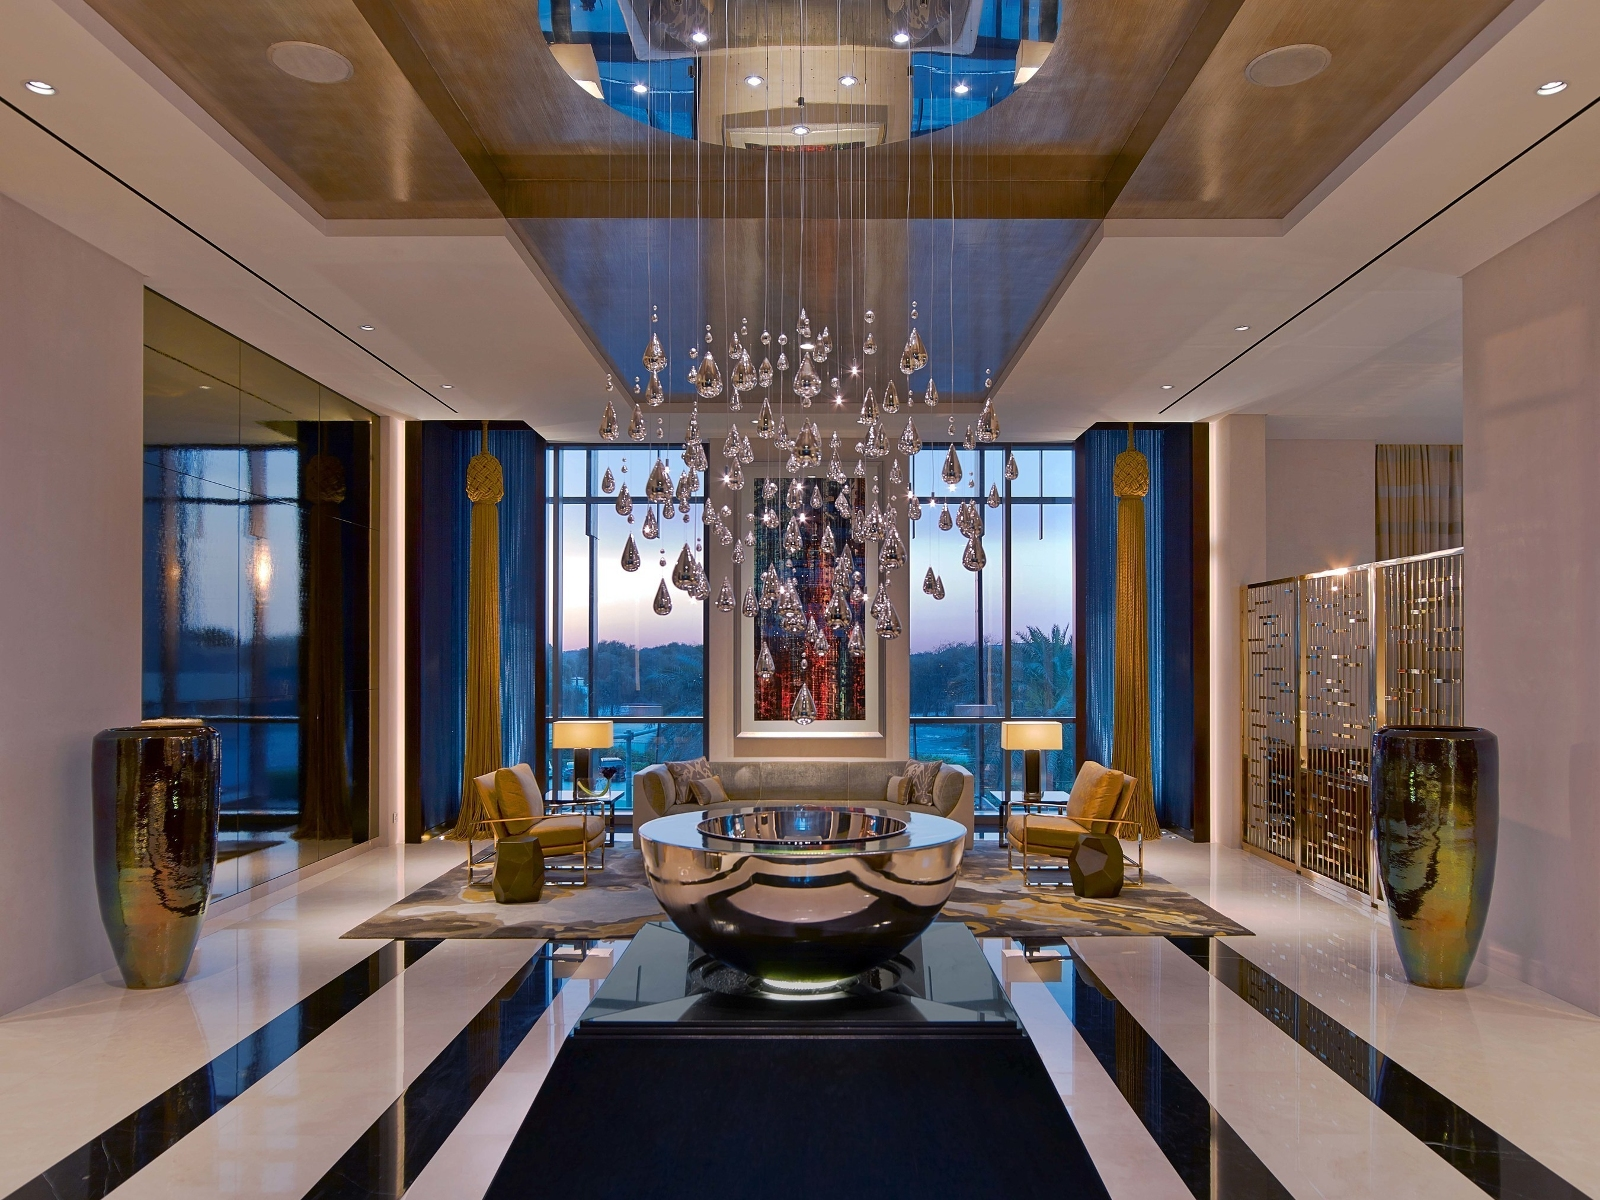 Luxury hotel archives luxury for Top hotels in dubai 2016